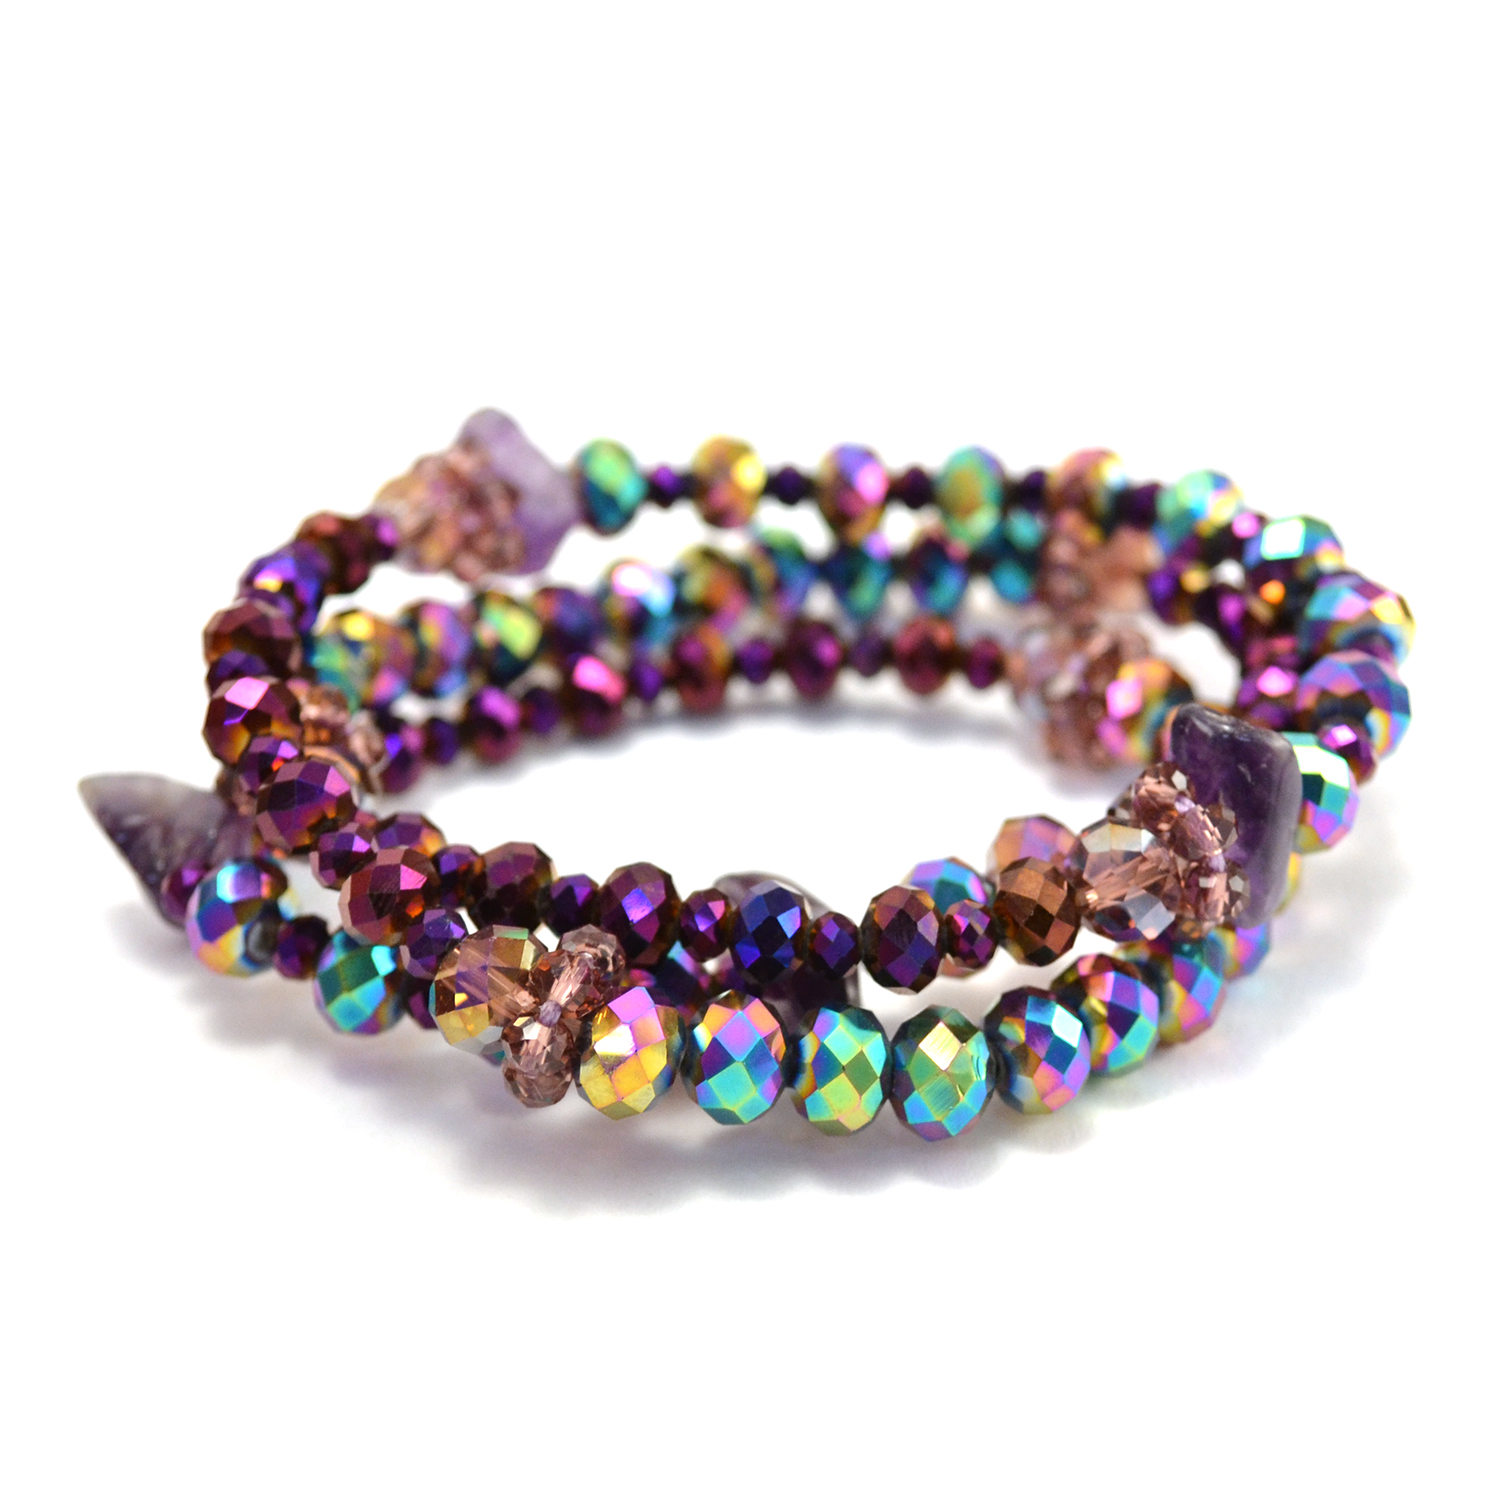 Vintage Crystal Wrap Bracelet in purple